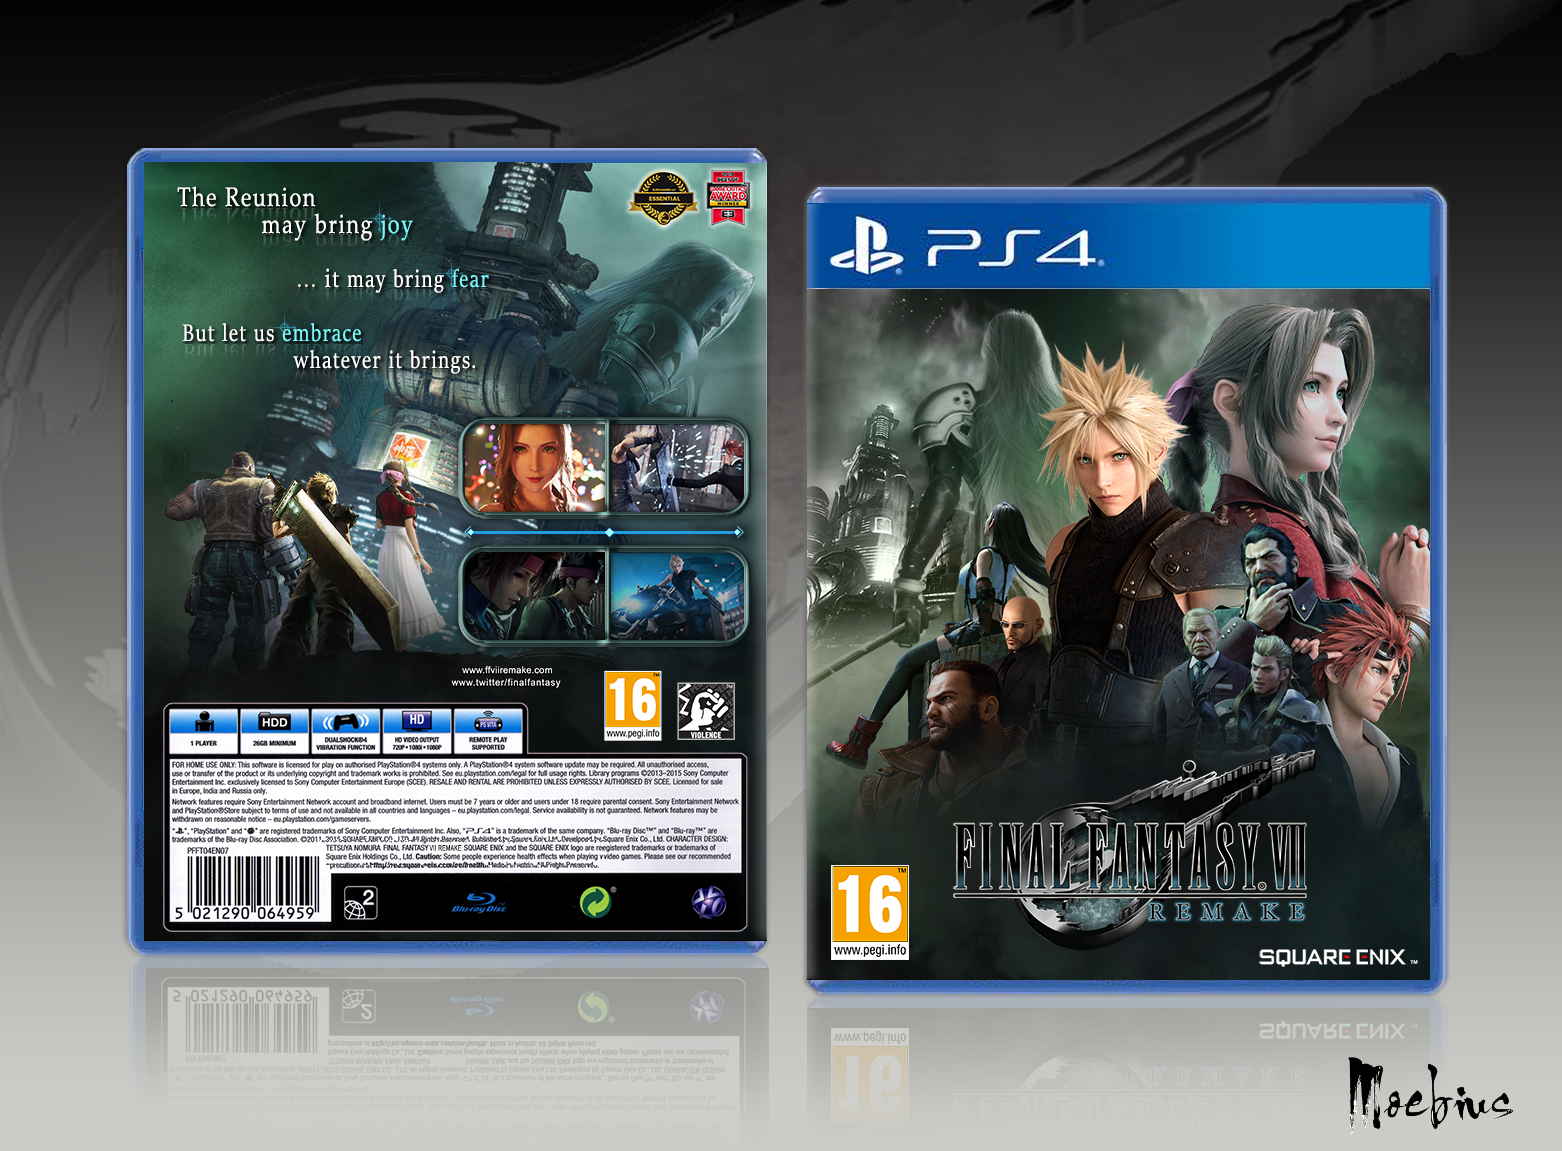 Final Fantasy VII Remake box cover